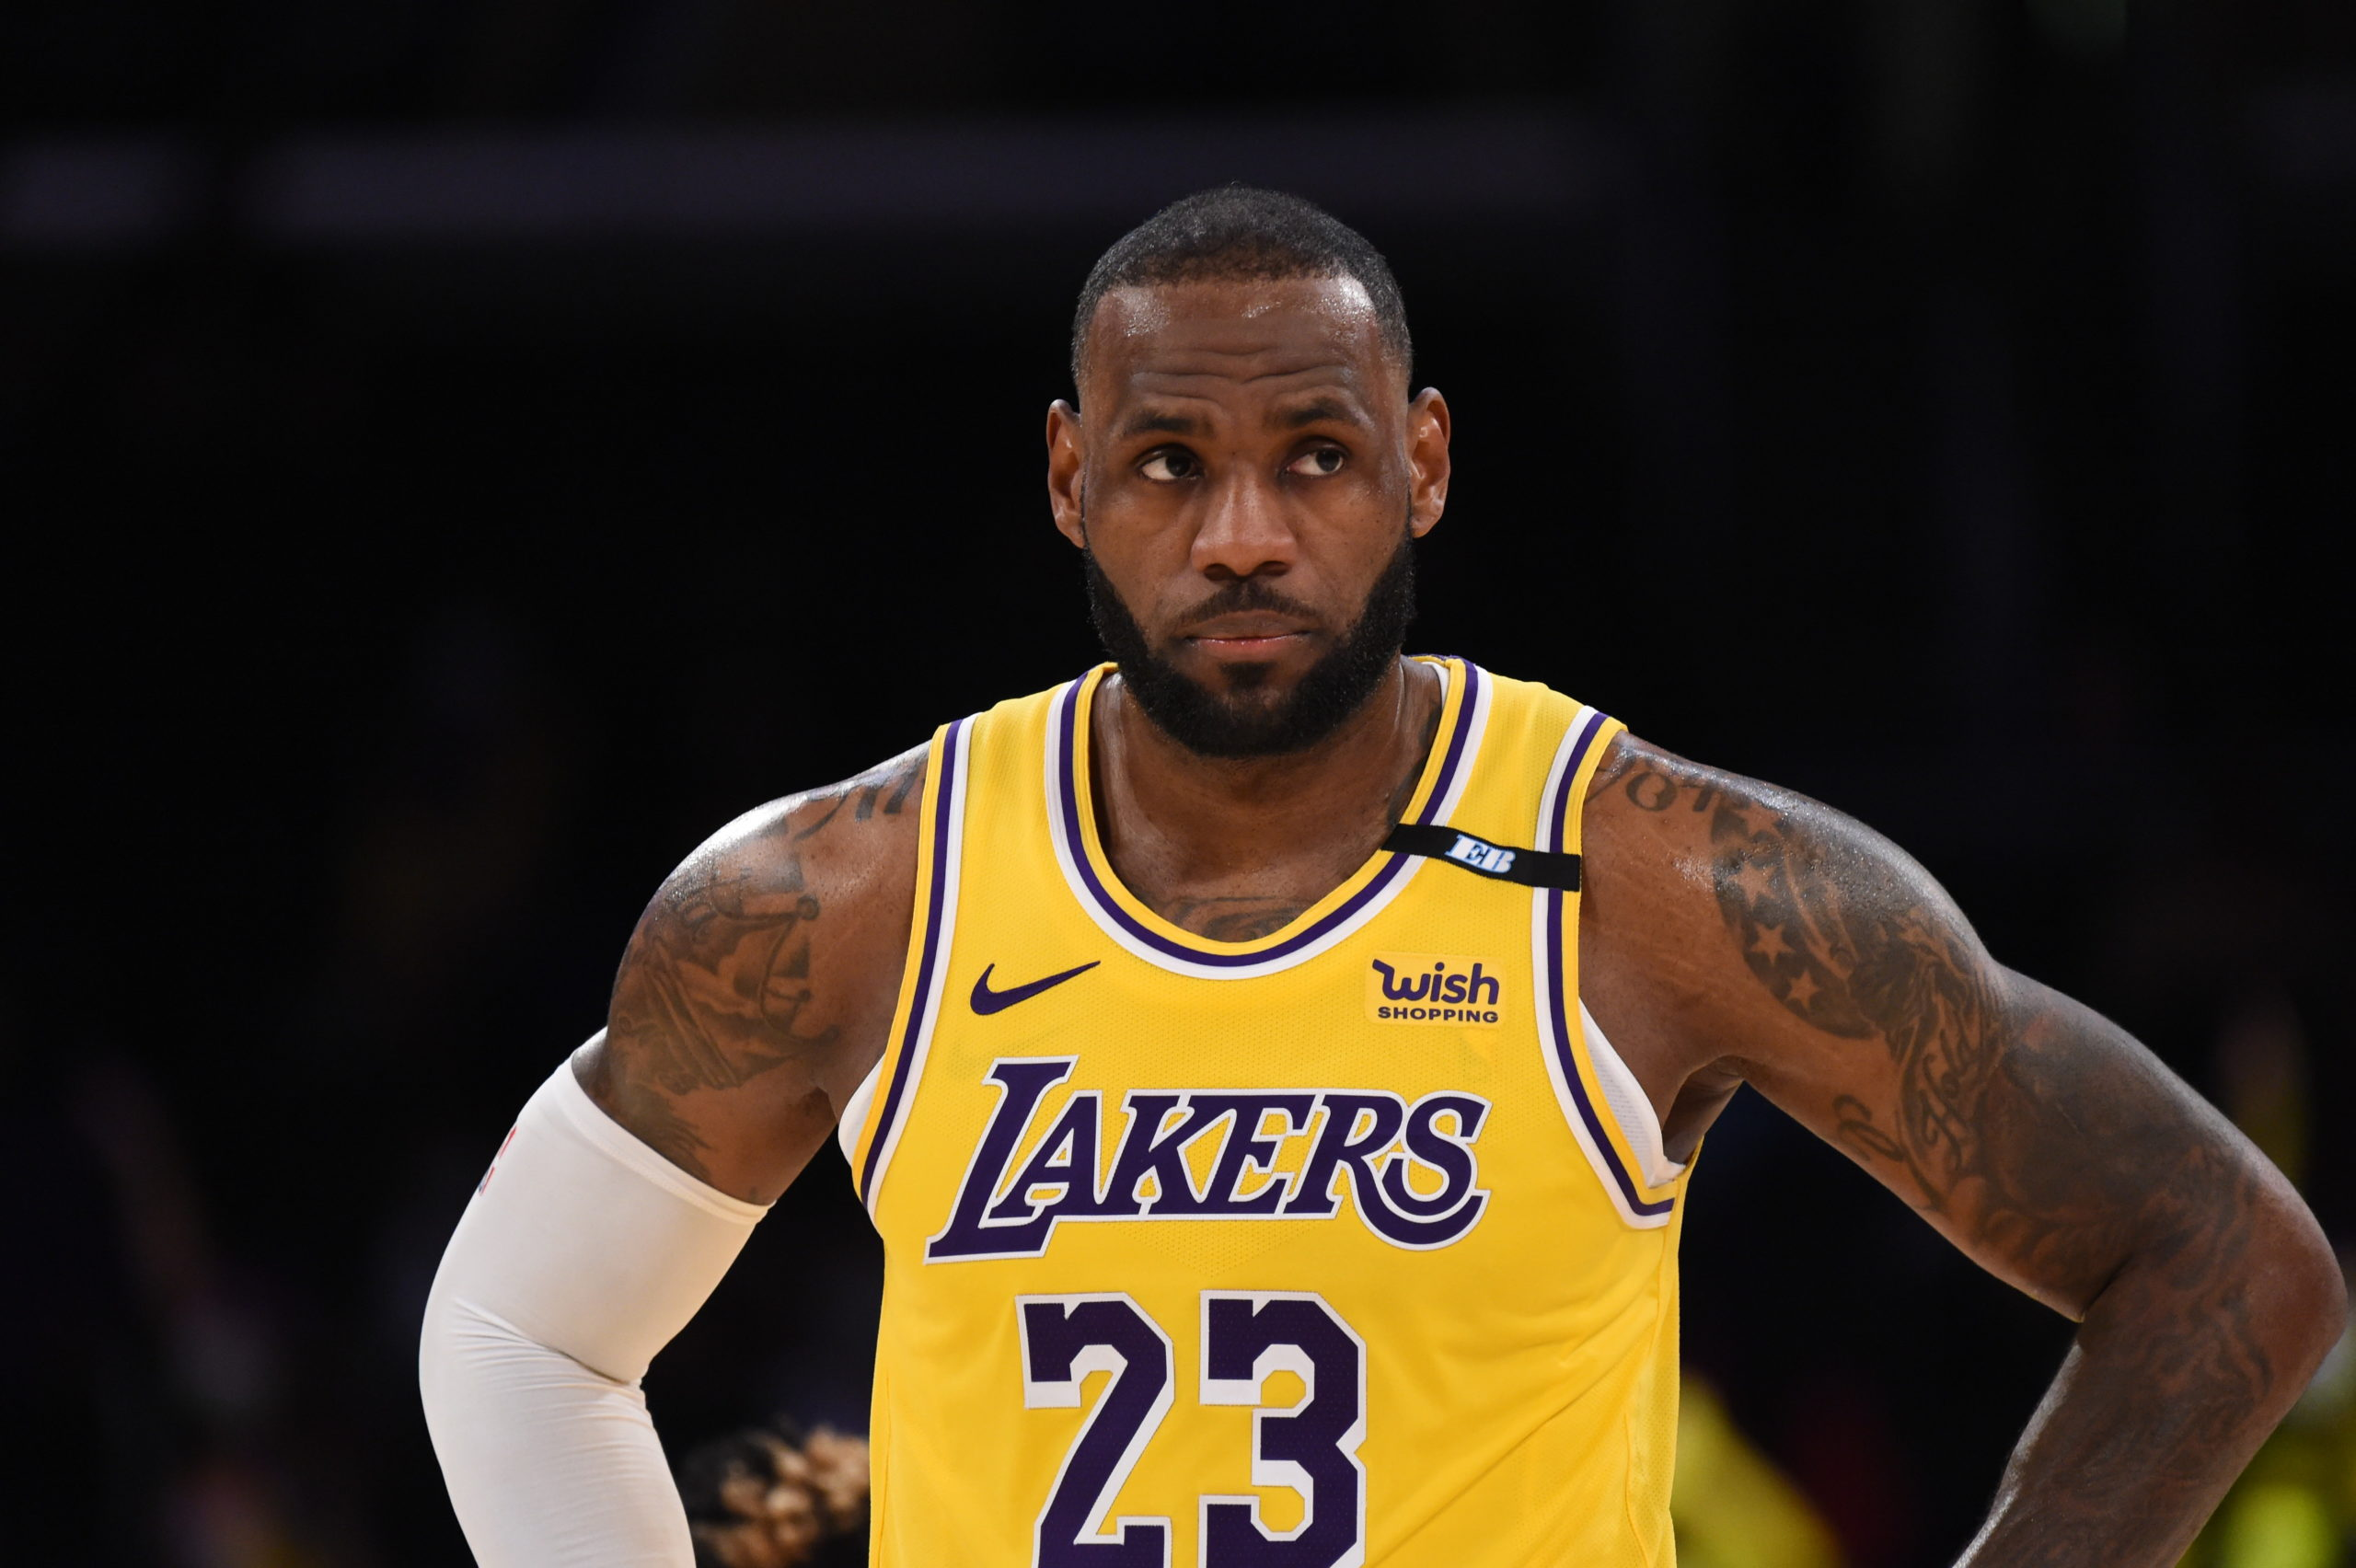 spears-lakers-lebron-james-playing-on-1-leg-in-playoffs-due-to-ankle-harm.jpg